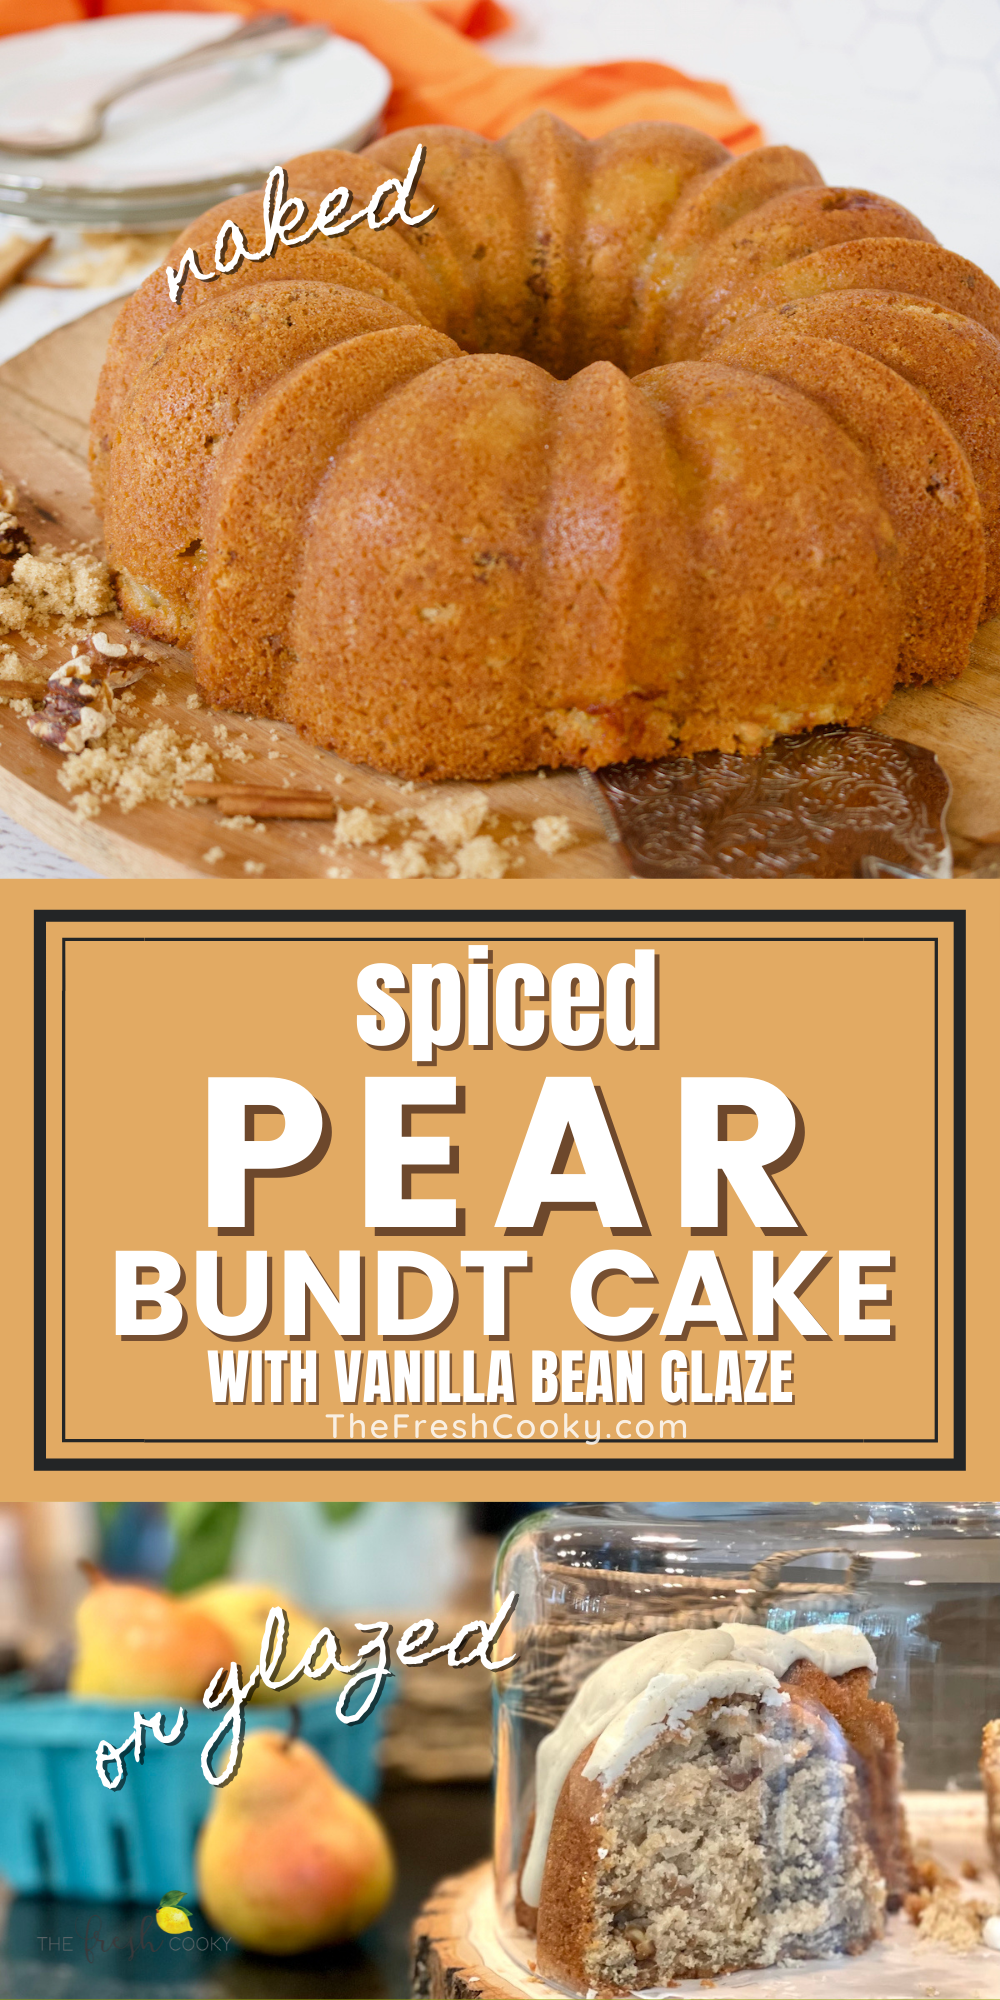 Fresh Spiced Pear Bundt Cake recipe with top image of unglazed pear bundt cake on pretty wooden platter, bottom image of glazed pear cake slice under a dome with pears behind.